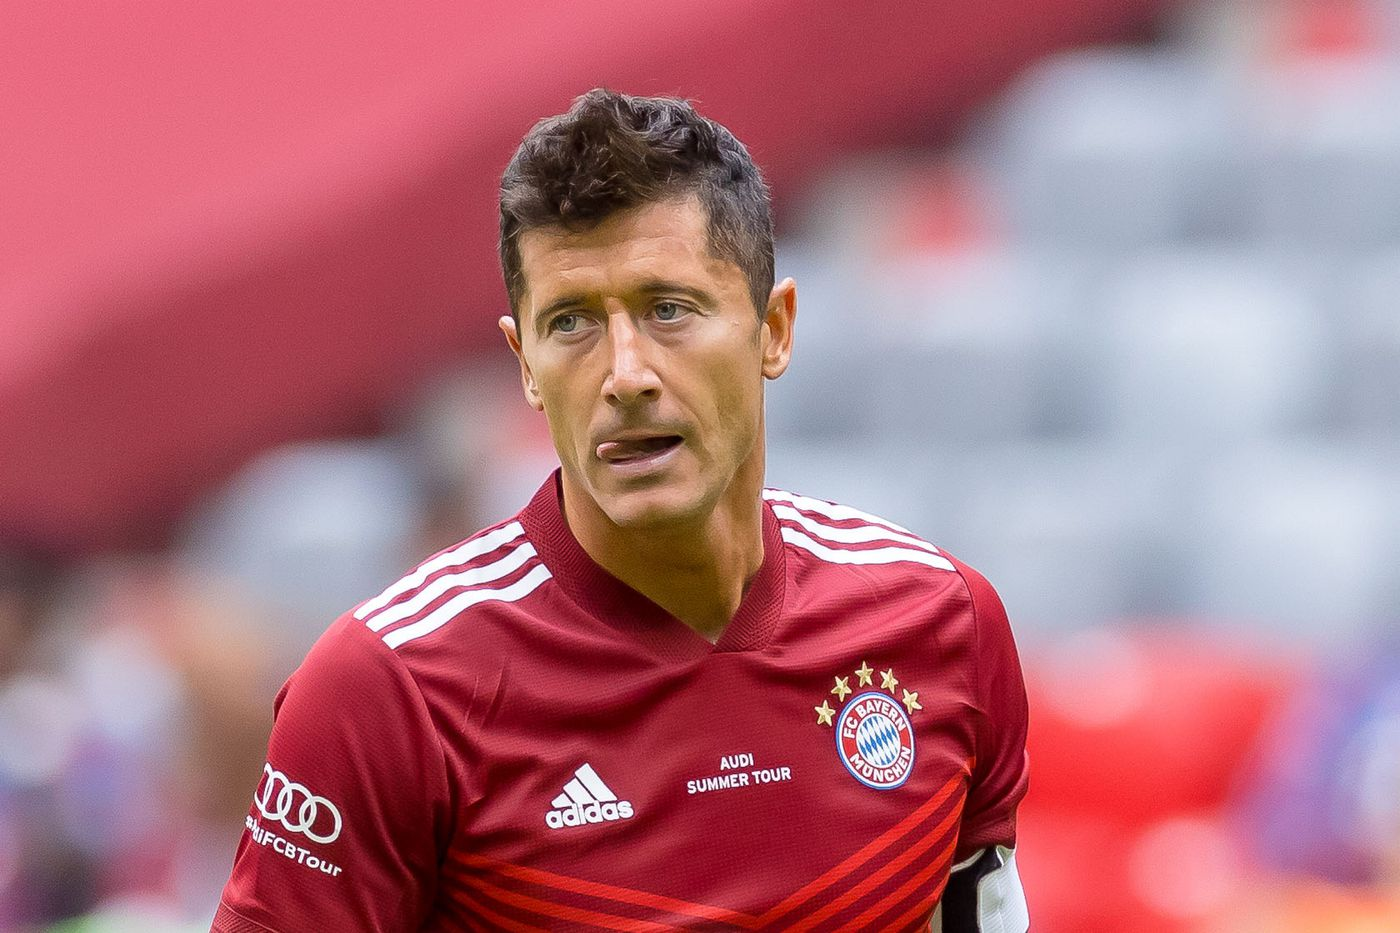 Report: Bayern Munich's Robert Lewandowski could be losing a suitor as  Manchester City is focused on Tottenham Hotspur's Harry Kane - Bavarian  Football Works